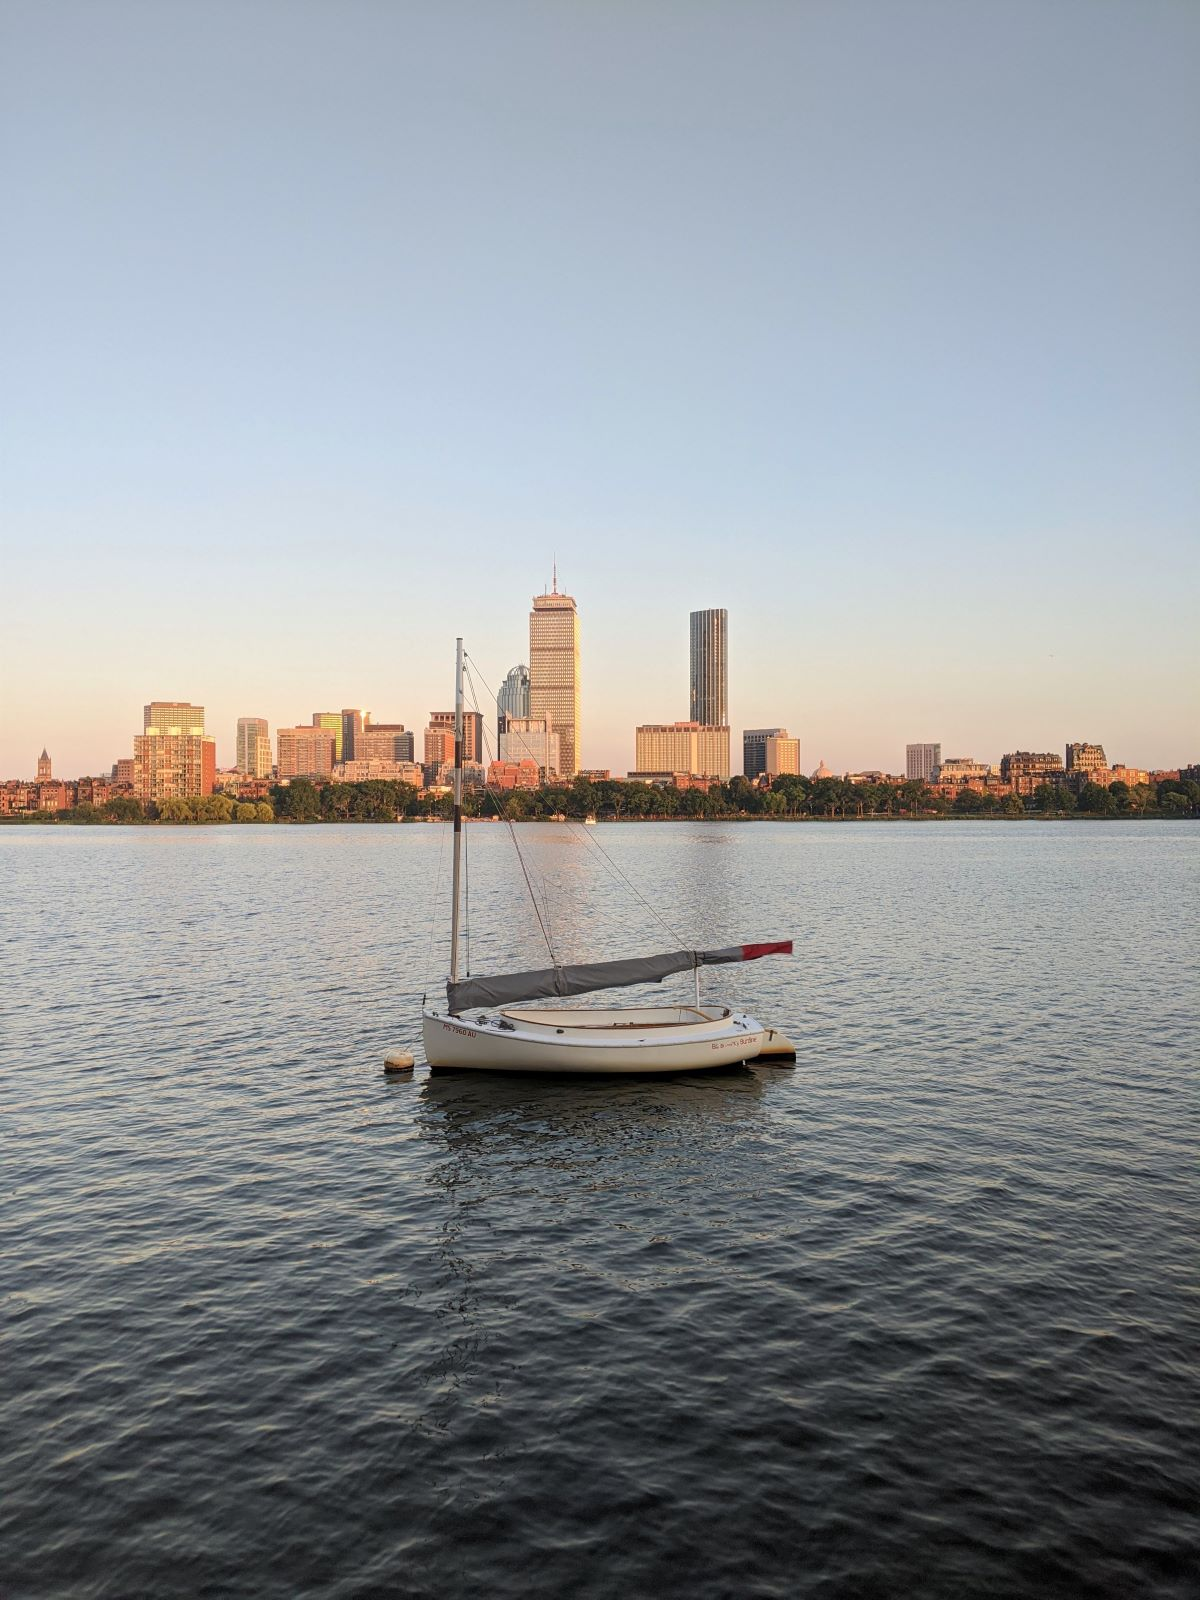 a sailboat on the Charles RIver with the Boston skyline in the background at sunset